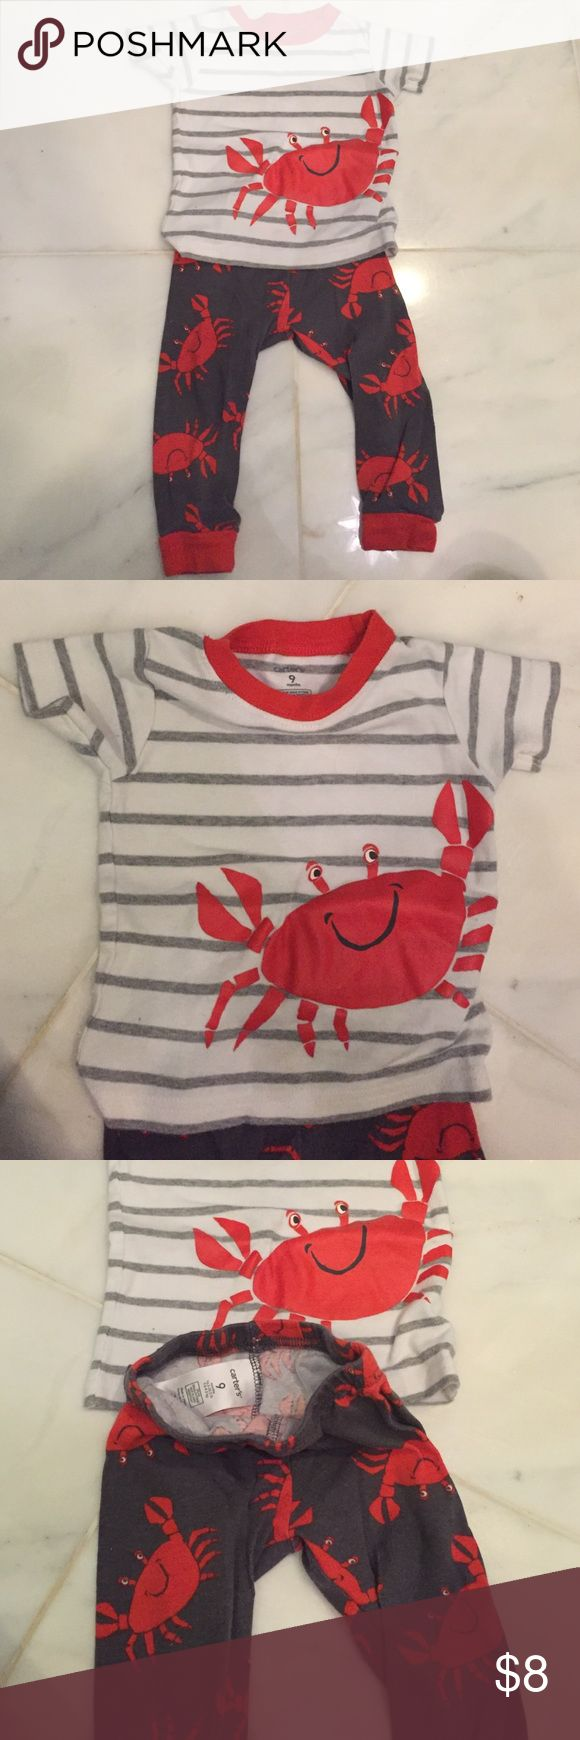 Crabby pjs - Carters Love this set! Adorable on! In great used condition. No stains that I can see. Smoke free dog loving home. All sales go to funding my Christmas gifts for my two little boys ❤️ bundle and save on my other kid clothes. Thanks for looking and happy holidays☃ Carter's Pajamas Pajama Sets